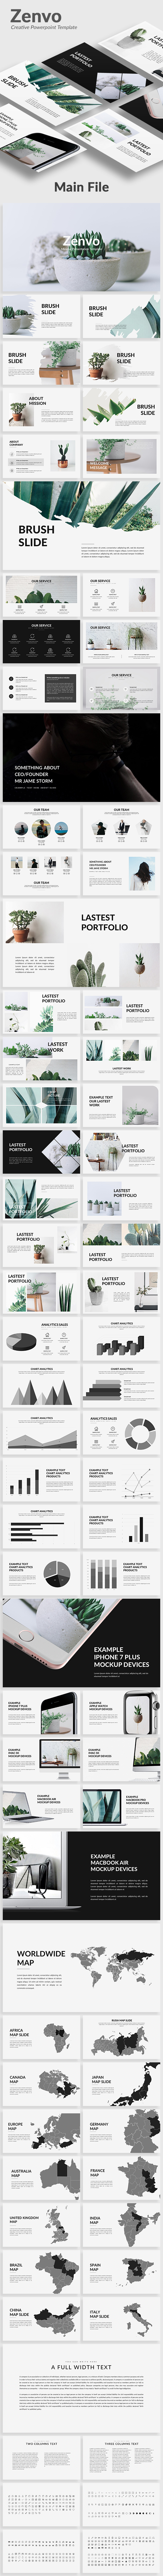 Zenvo - Creative Powerpoint Template - Creative PowerPoint Templates